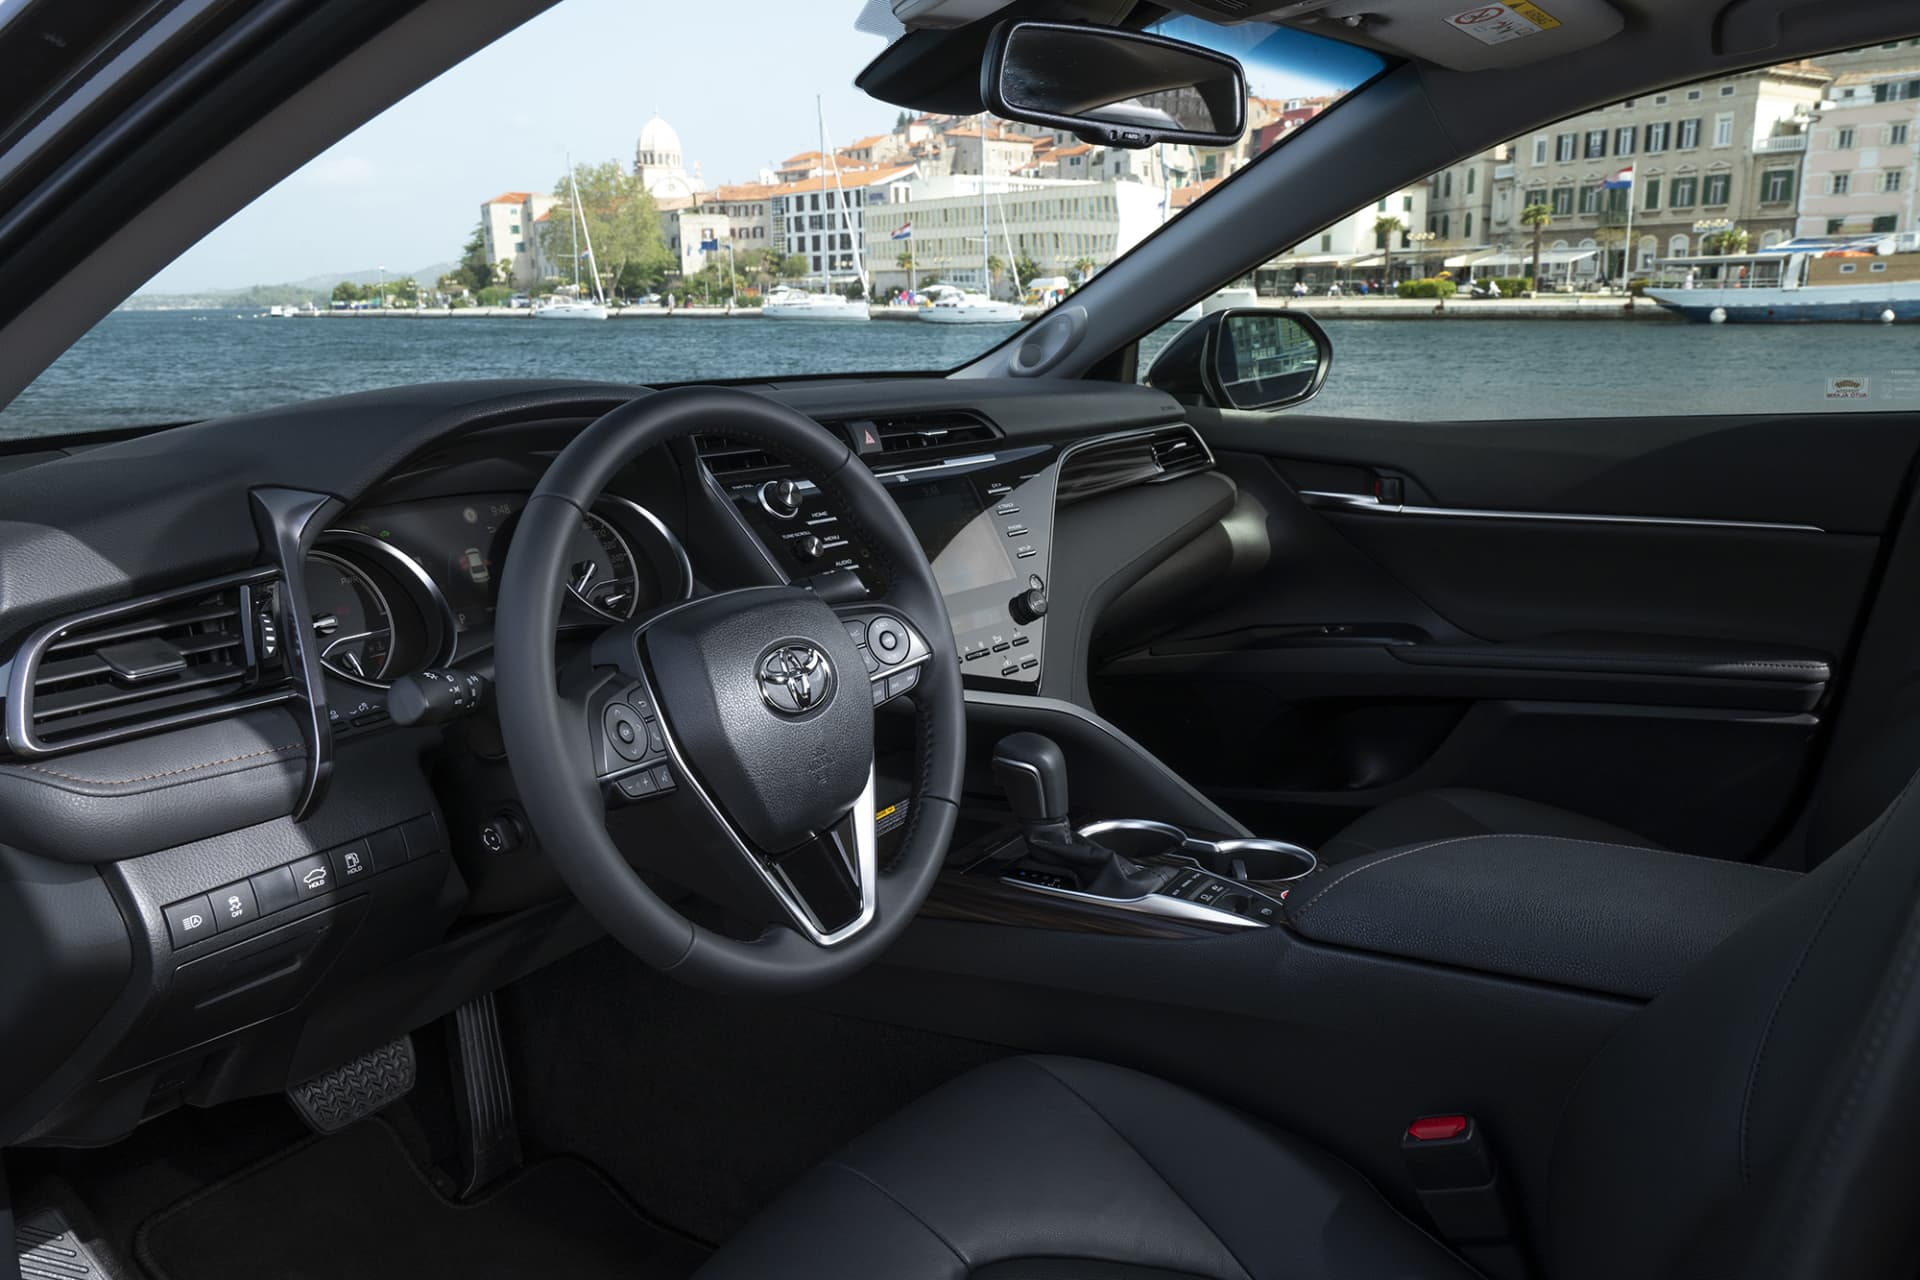 The interior holds a high standard on the Camry and has a lot of sharp lines, a recurring feature in Japanese car design.